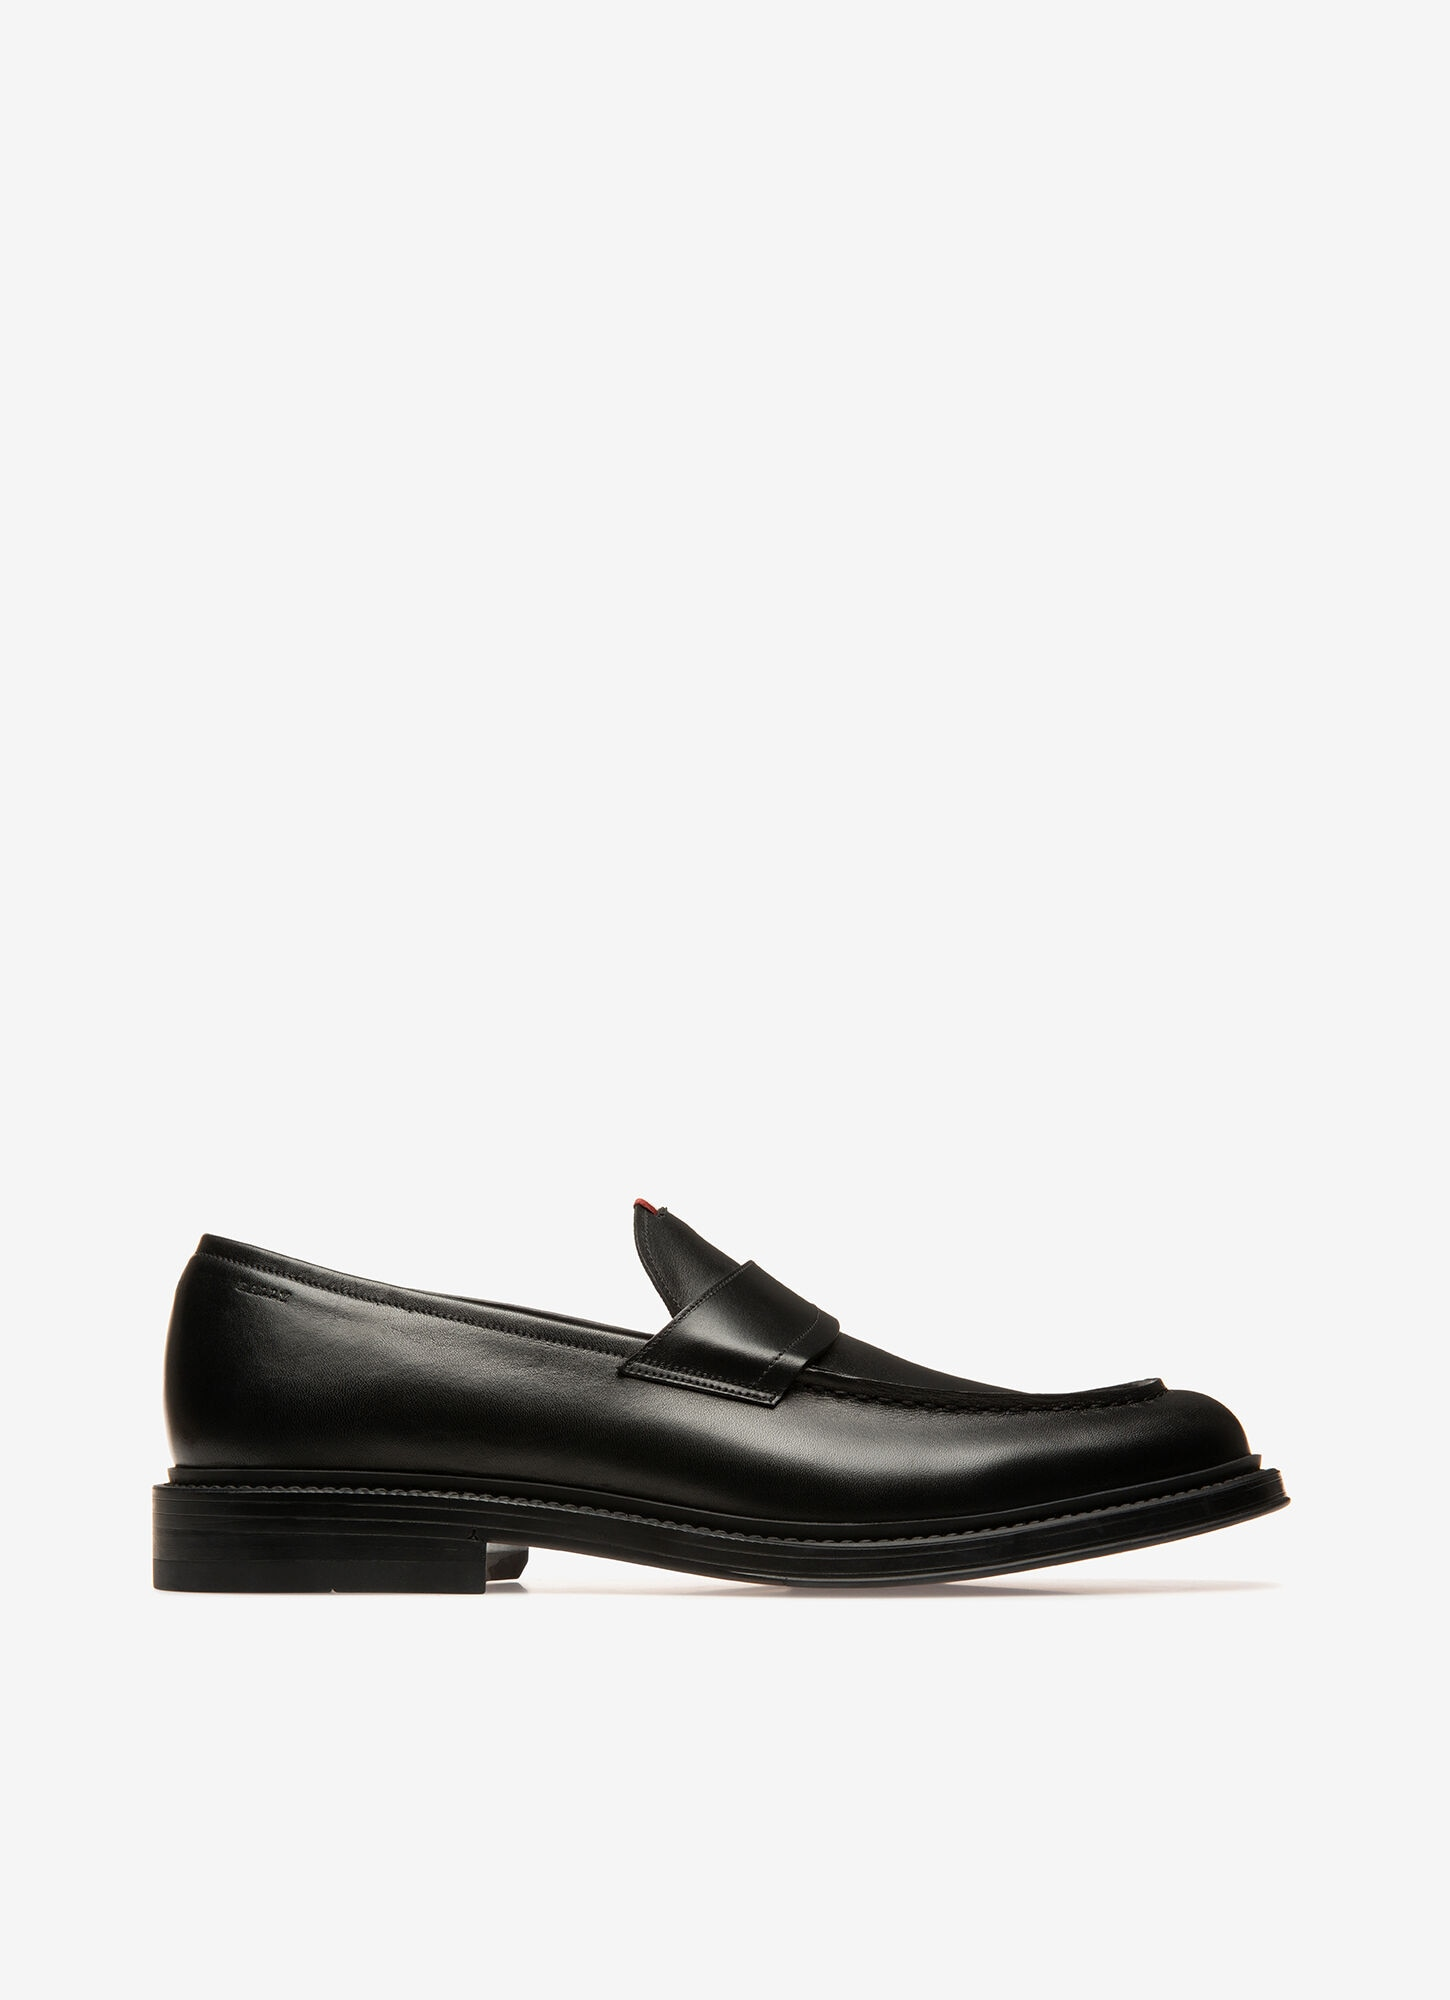 BLACK CALF LEATHER | MENS LOAFER | BALLY